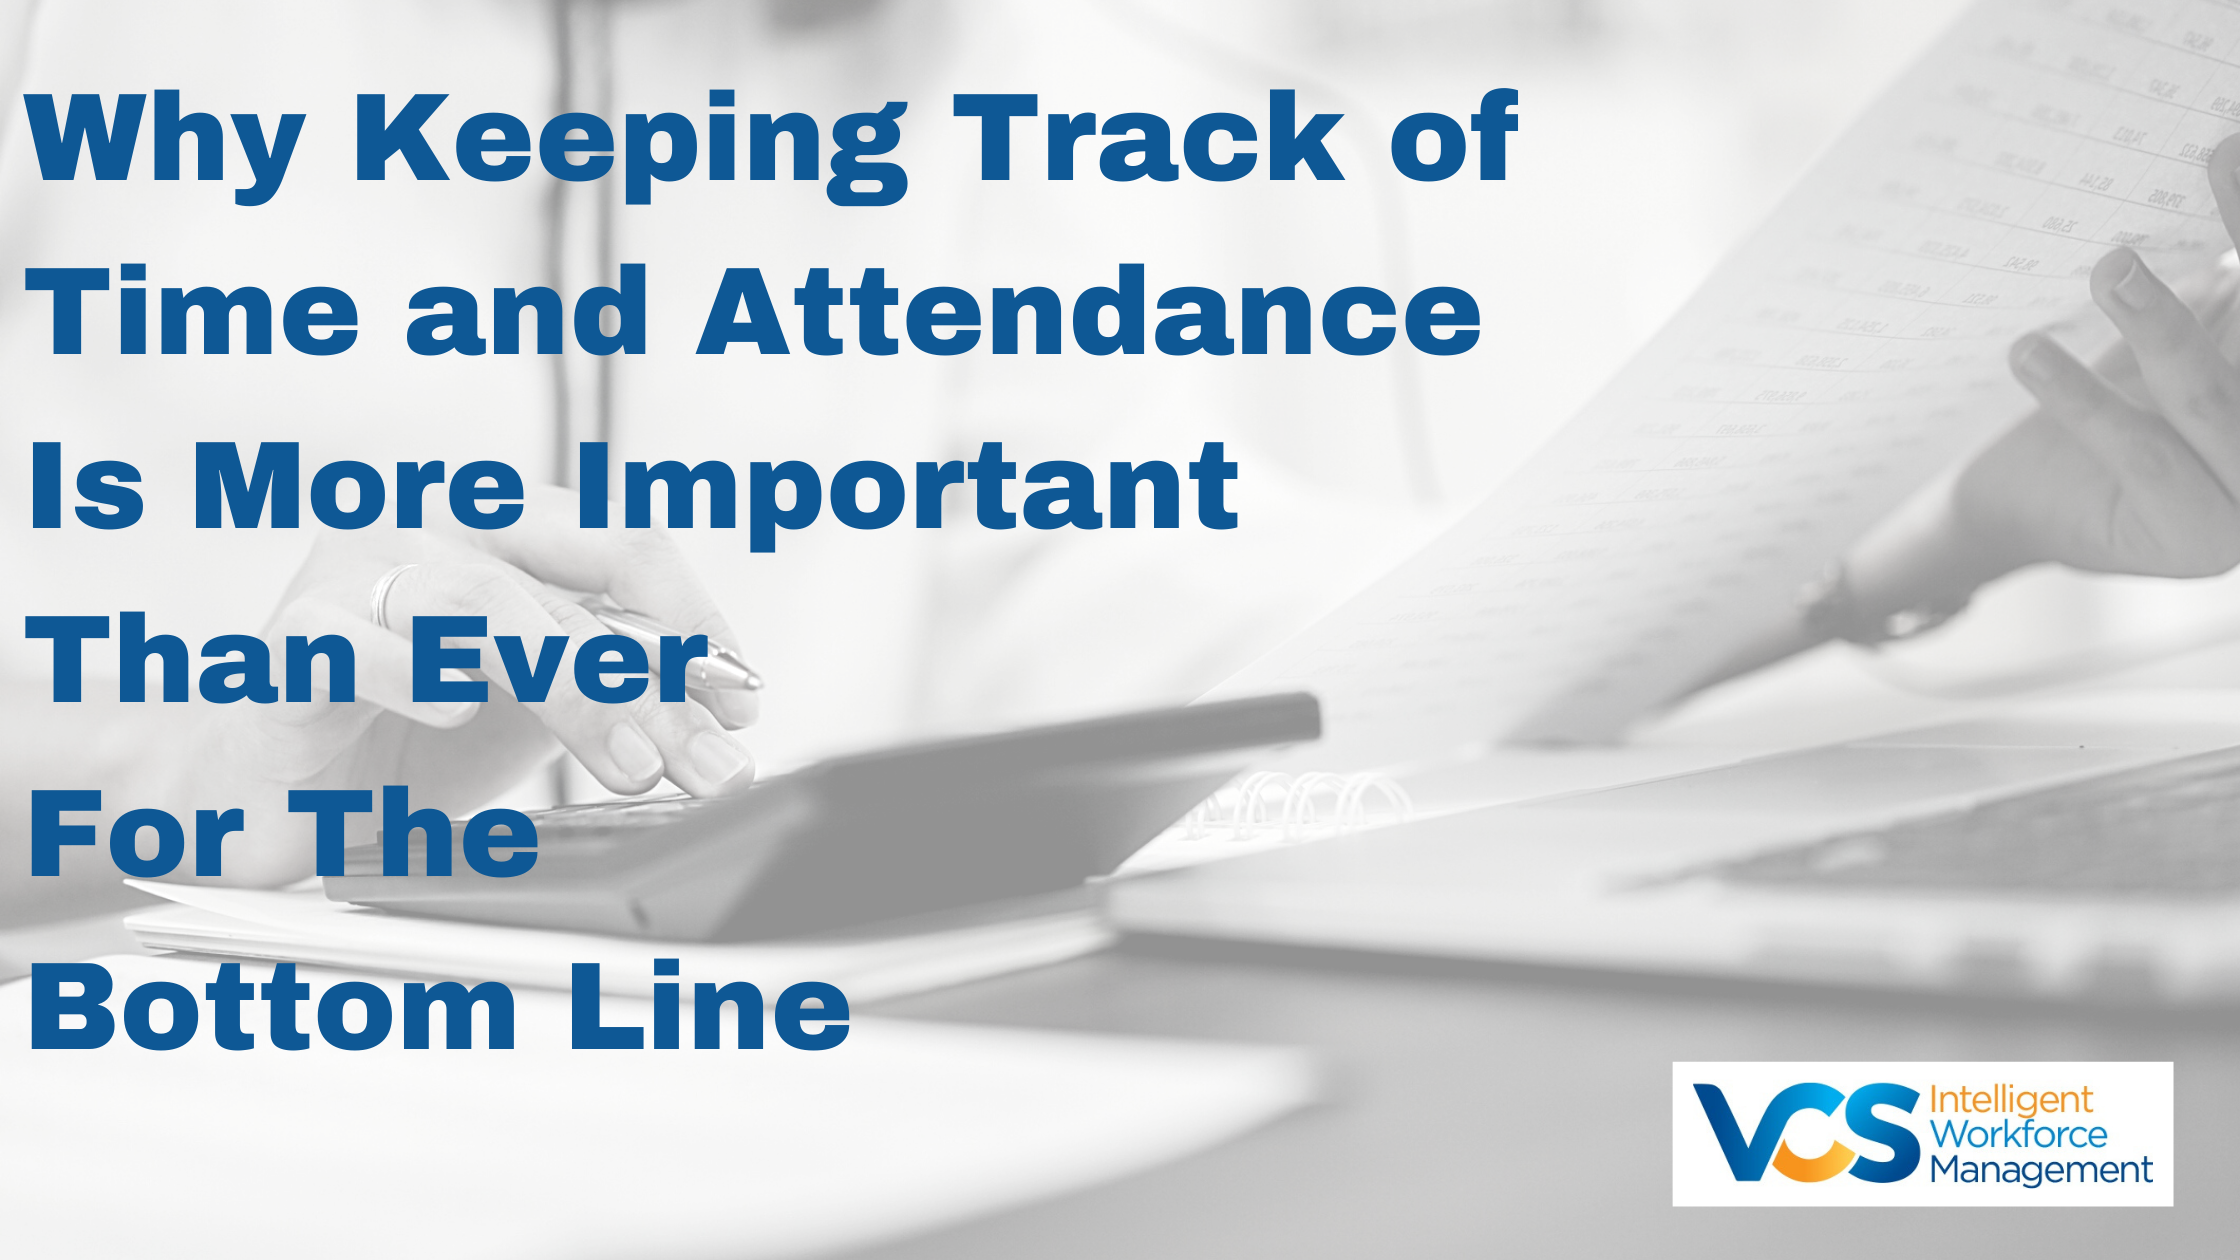 Why keeping Track of Time and Attendance Is More Important Than Ever for the Bottom Line-1